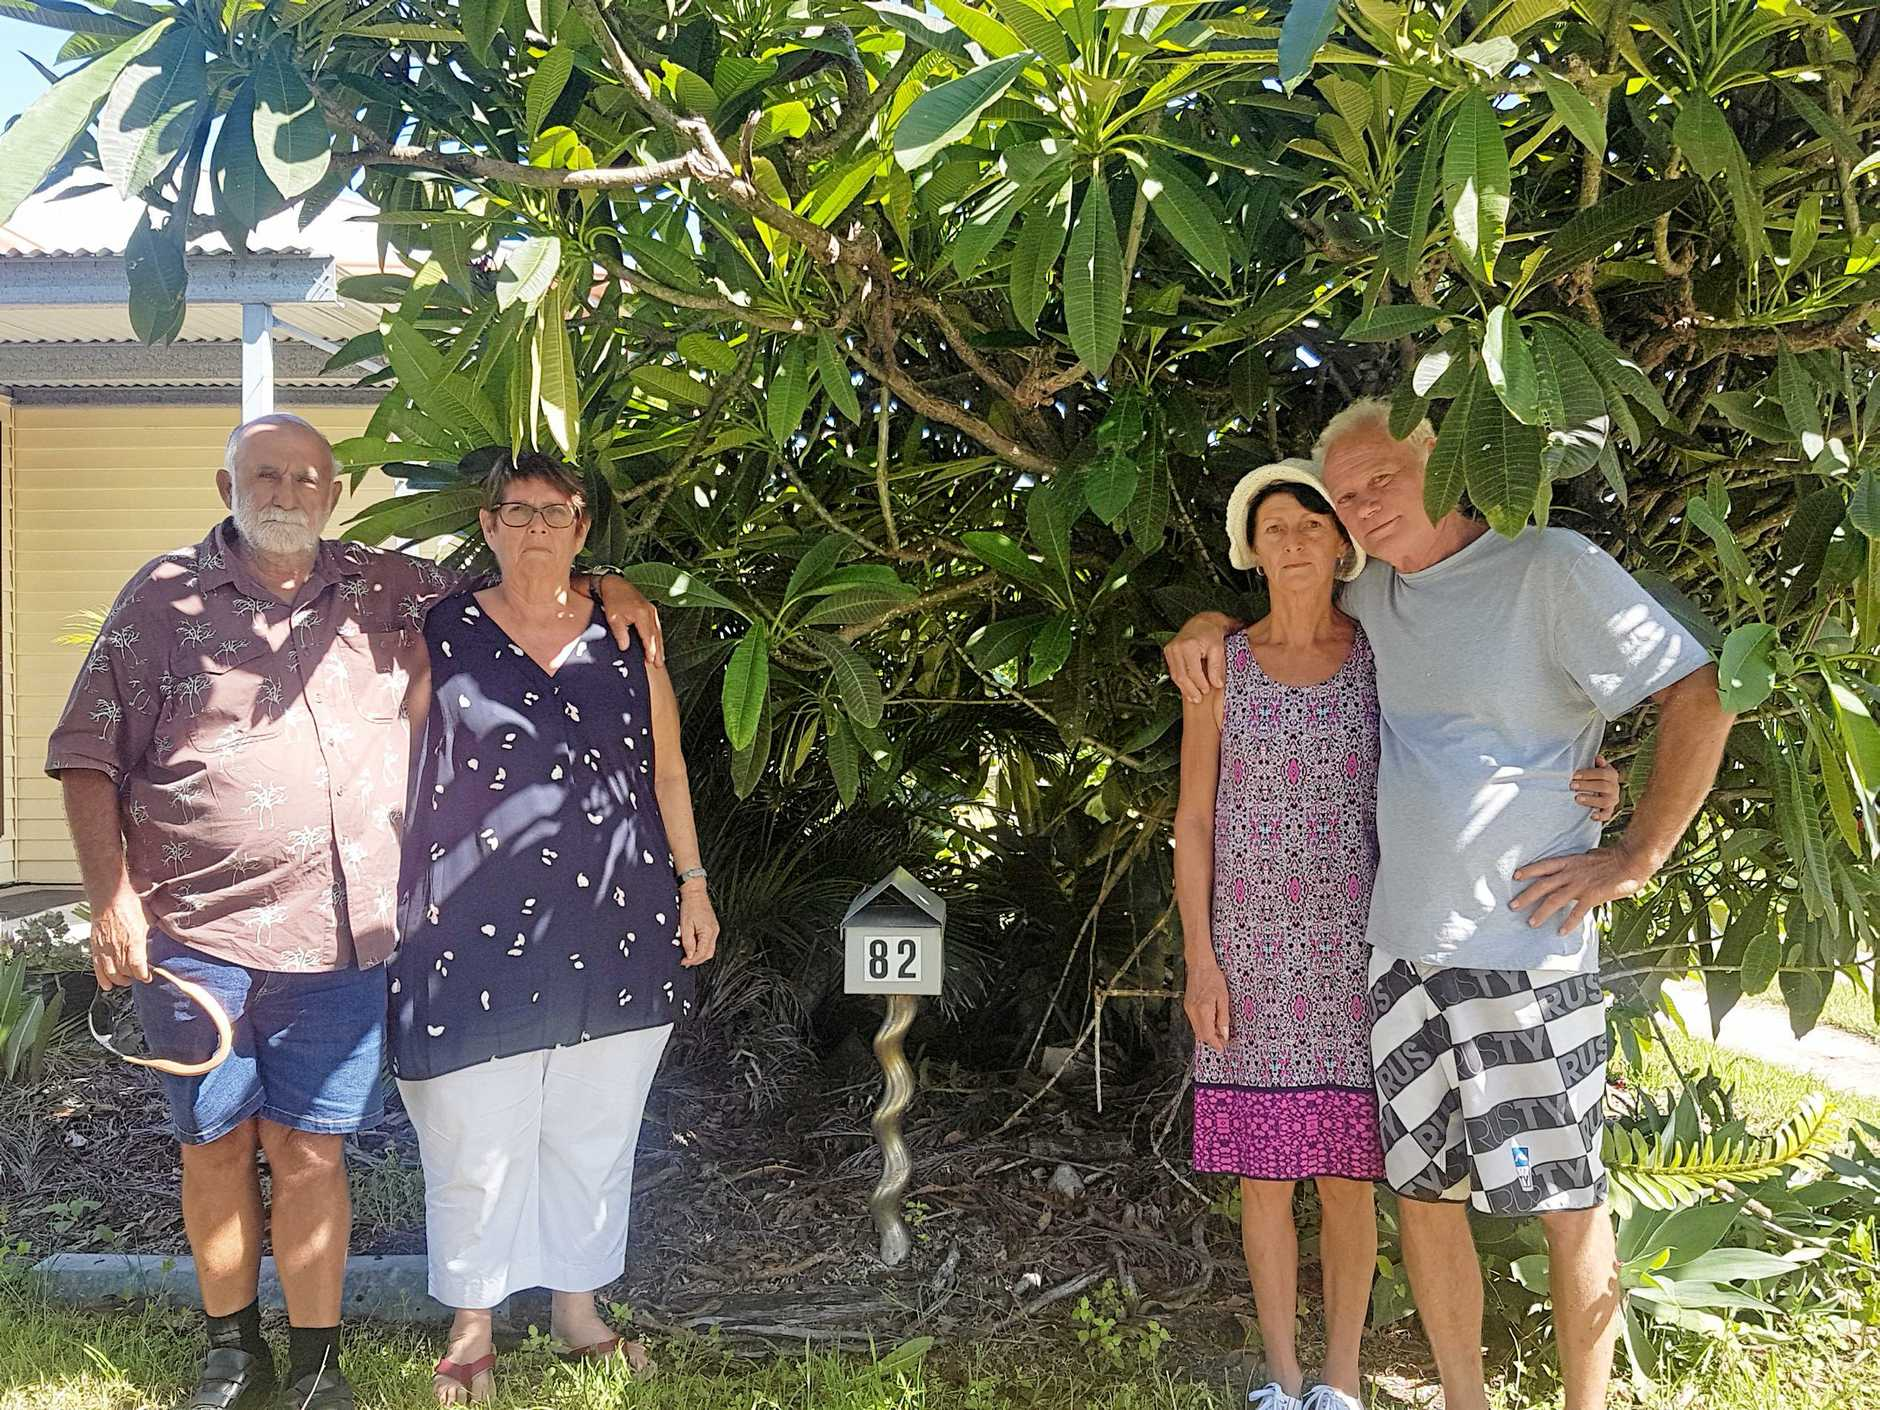 TRADING PLACES: Two sets of Bowen neighbours are facing an uphill battle in legal fees to swap land titles after realising they are living in each others home. Pictured are next door neighbours Eddie Jones, Lyn Jones, Karen Ford and Jeff Ford.